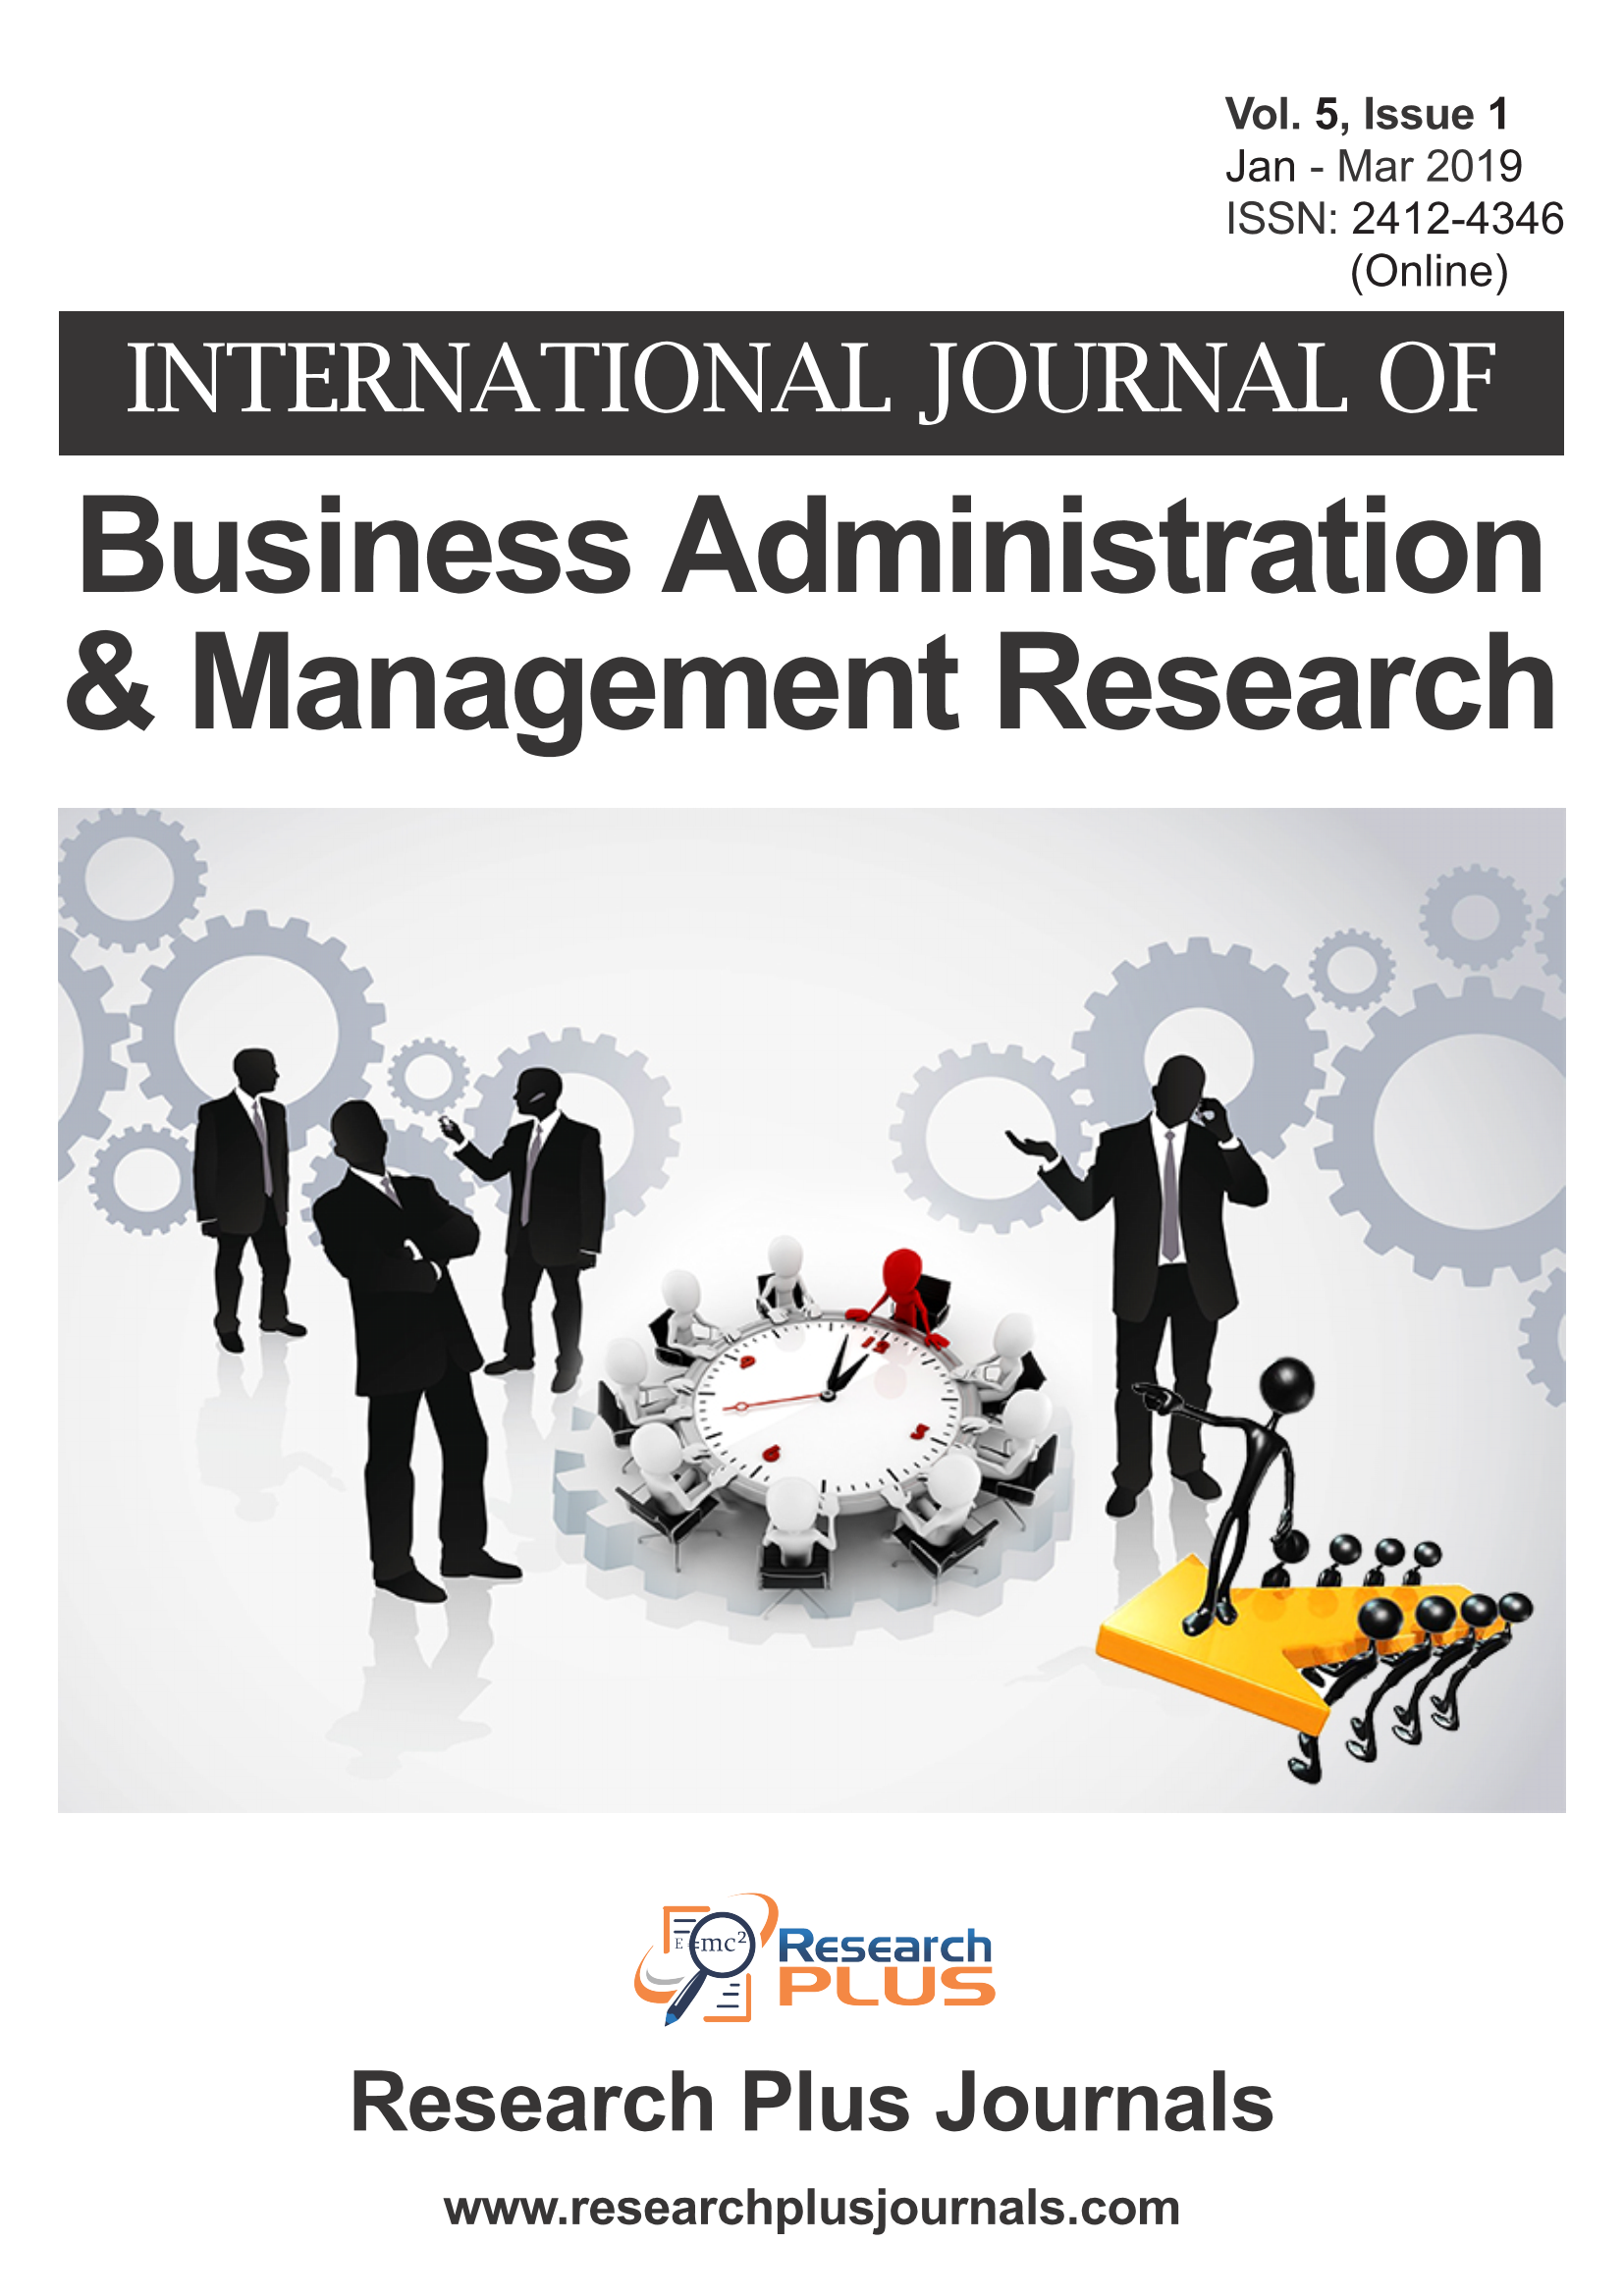 Volume 5, Issue 1, International Journal of Business Administration and Management Research (IJBAMR) (Online ISSN: 2412-4346)